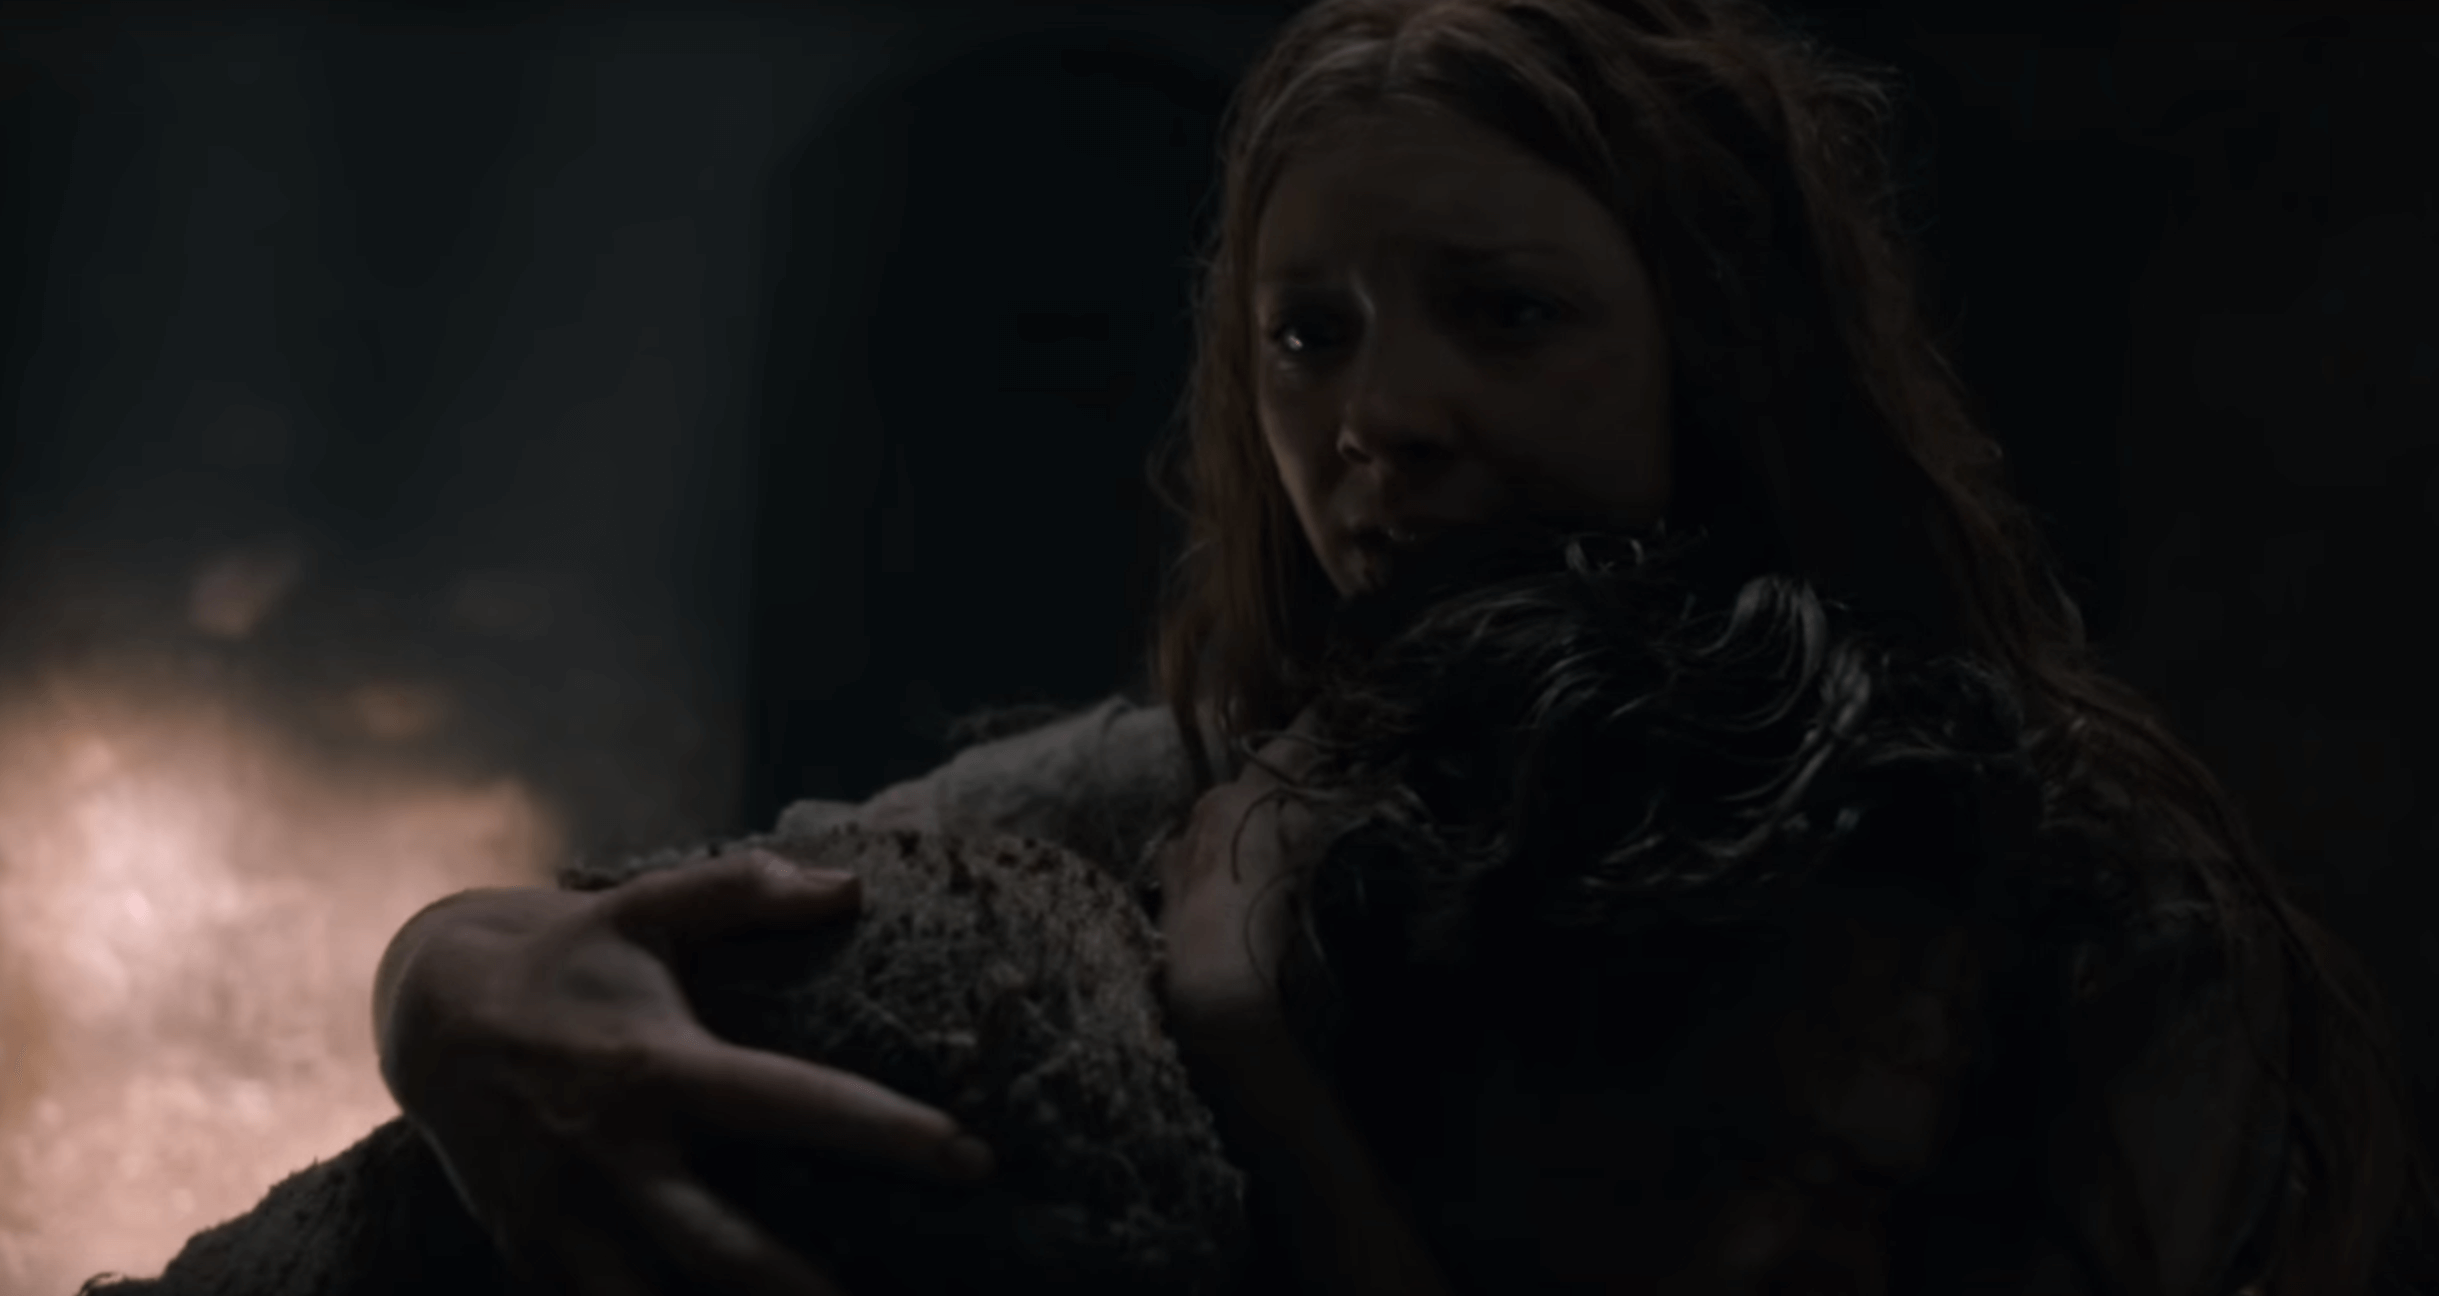 Game of Thrones Season 6 Episode 4 Spoilers, Promo, Trailer, Air Date, Synopsis 6x4